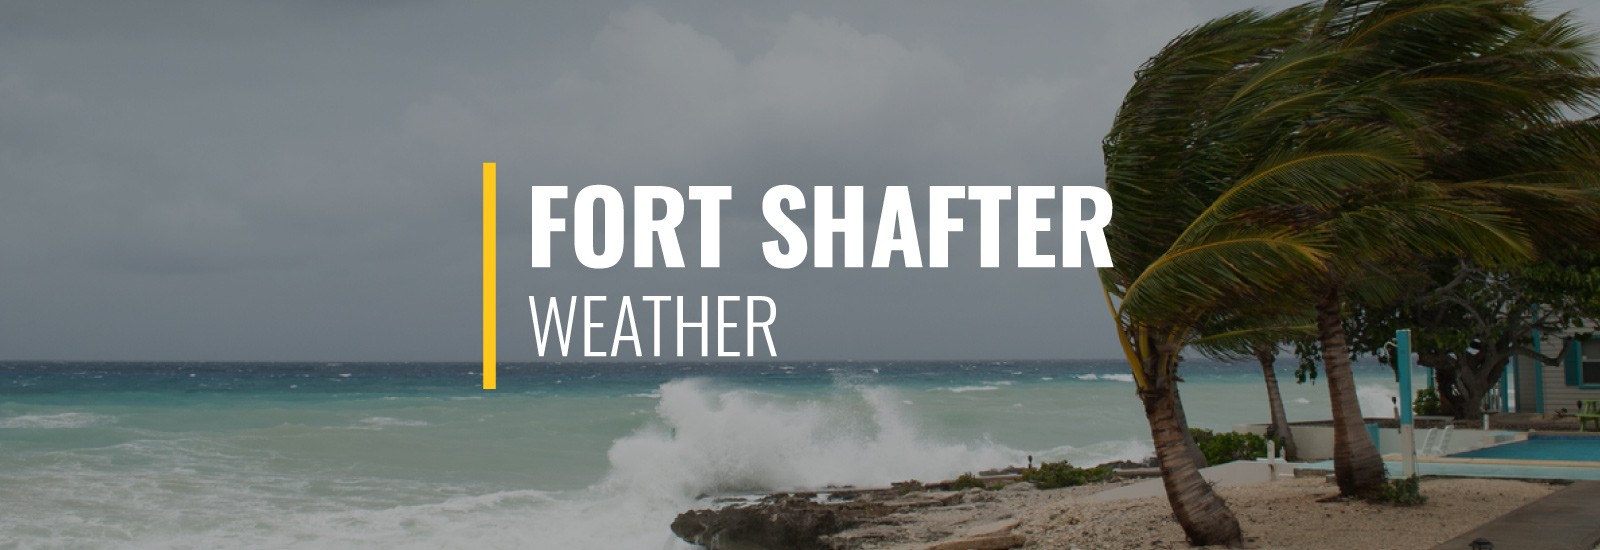 Fort Shafter Weather